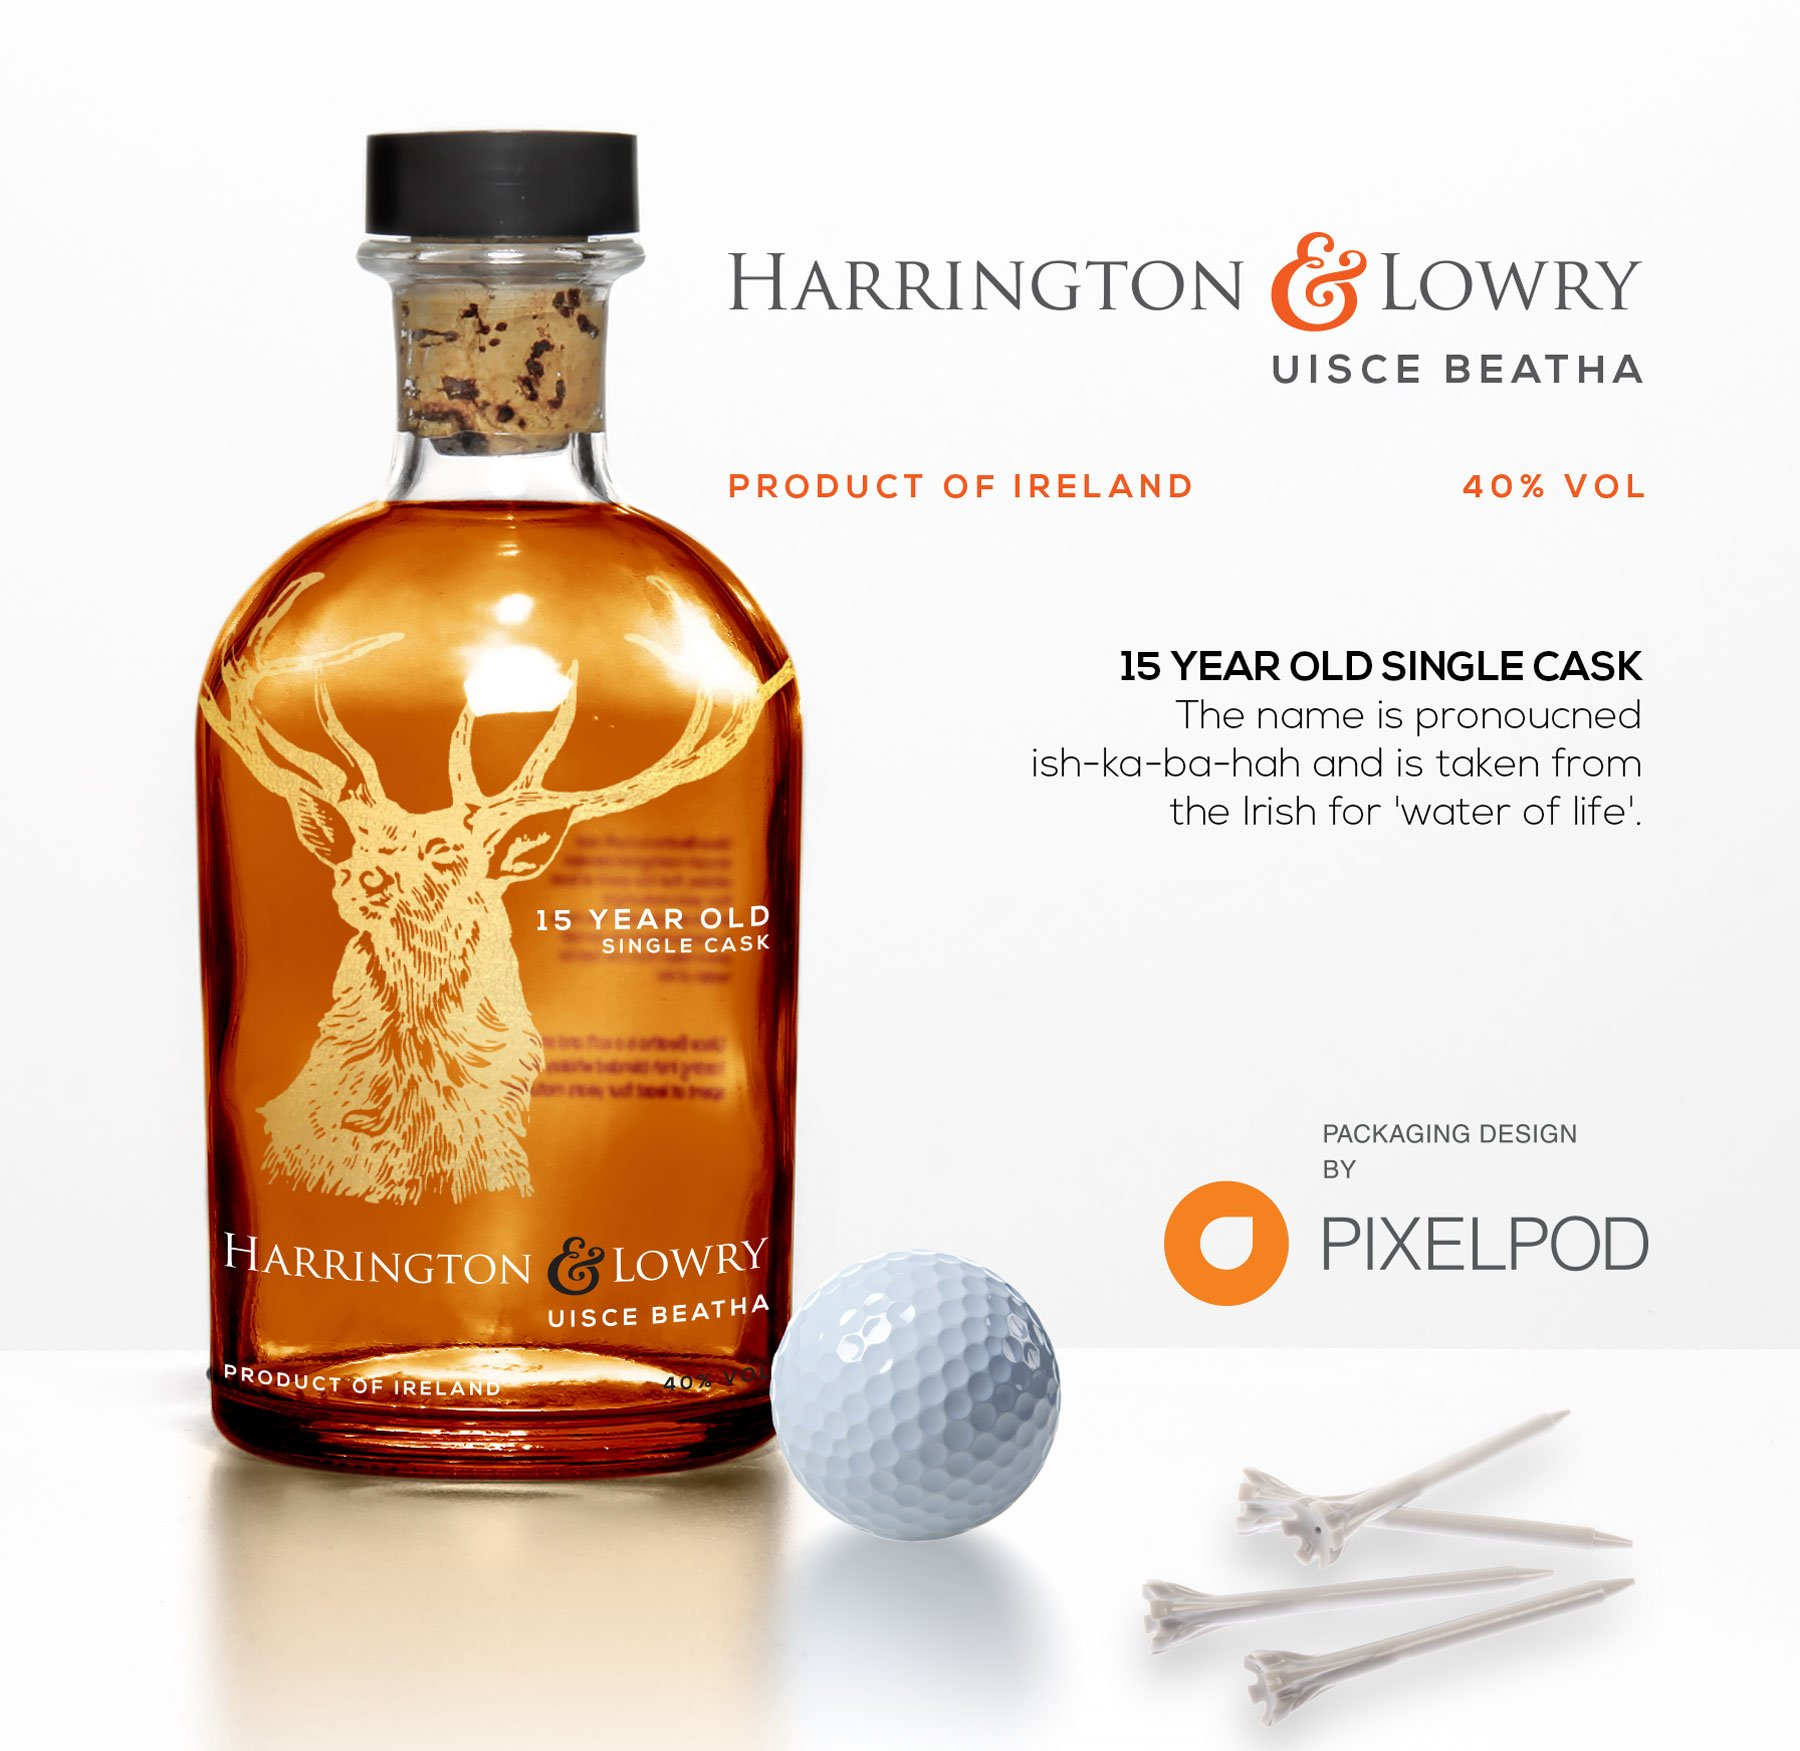 Harrington and Lowry whiskey, packaging design by pixelpod